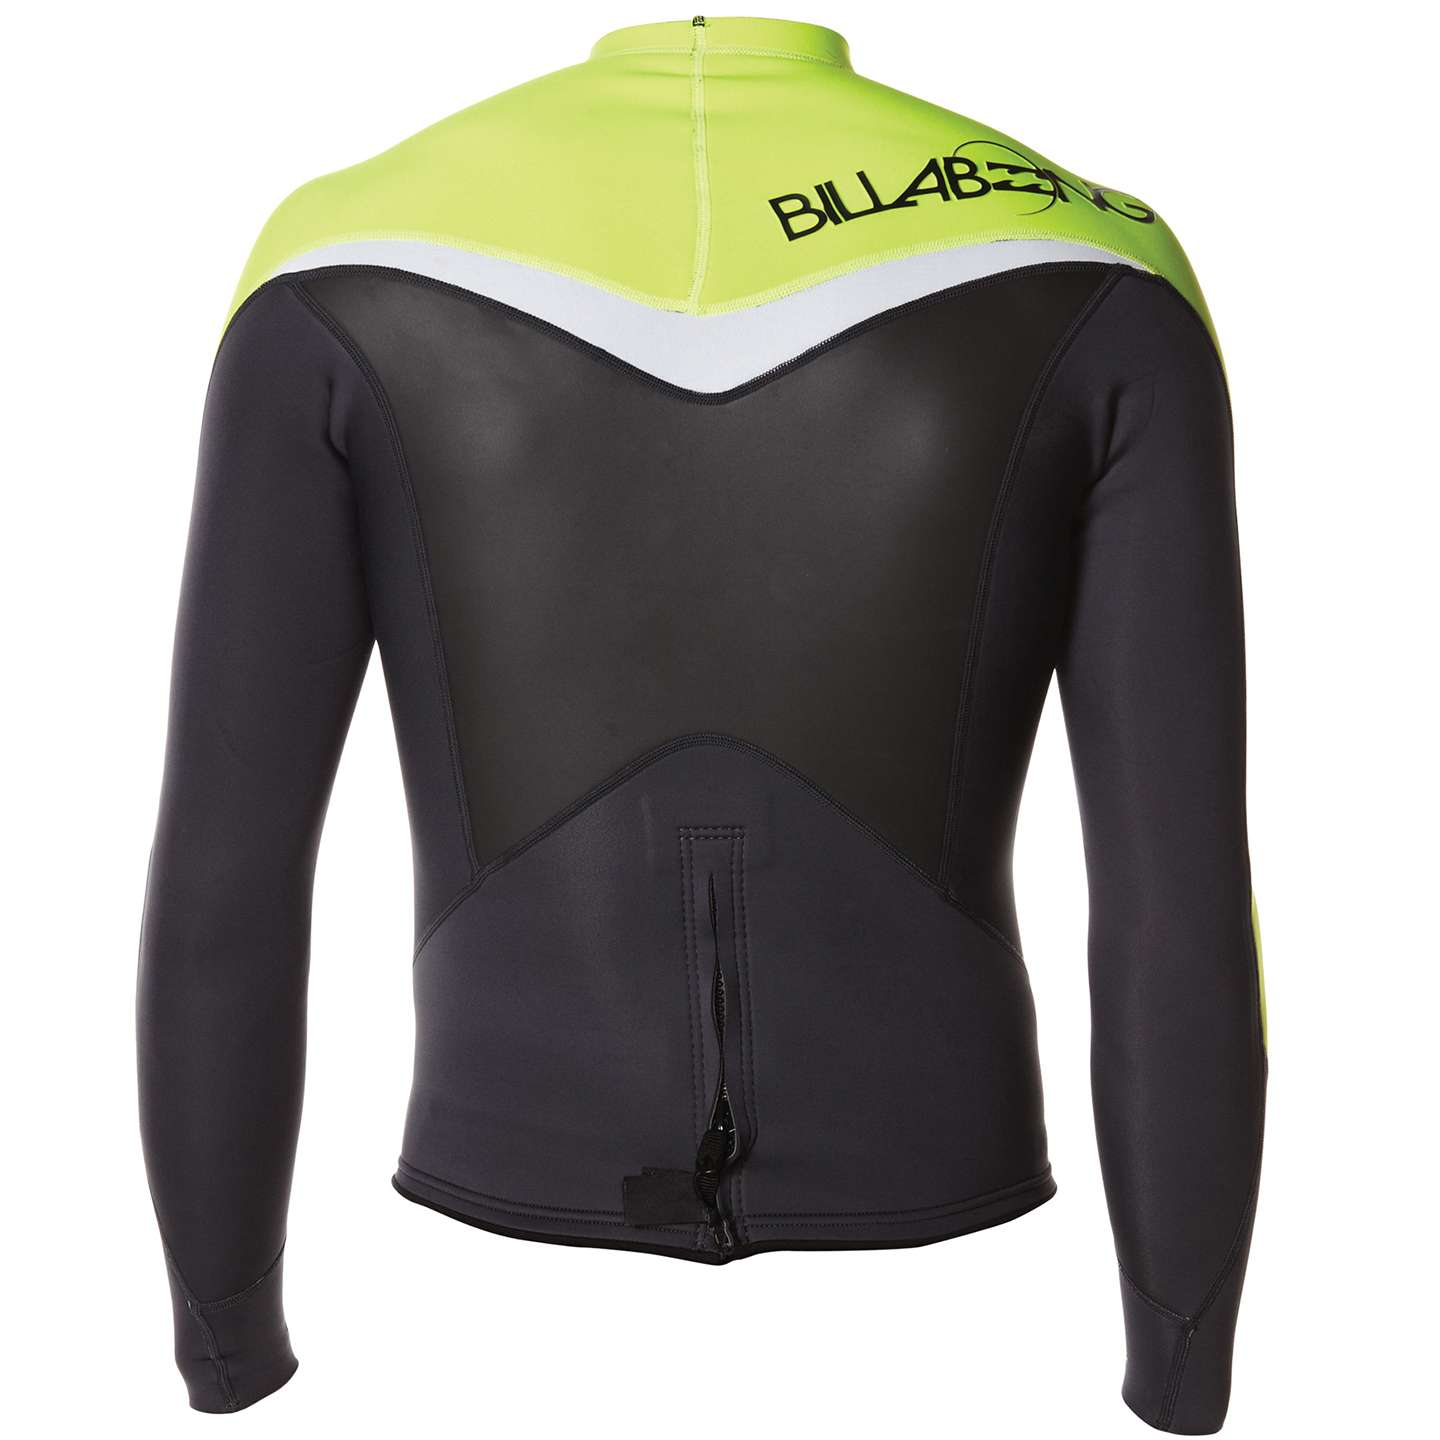 Billabong Foil 2mm Long Sleeve Jacket 2014. nextprev ad43030fa